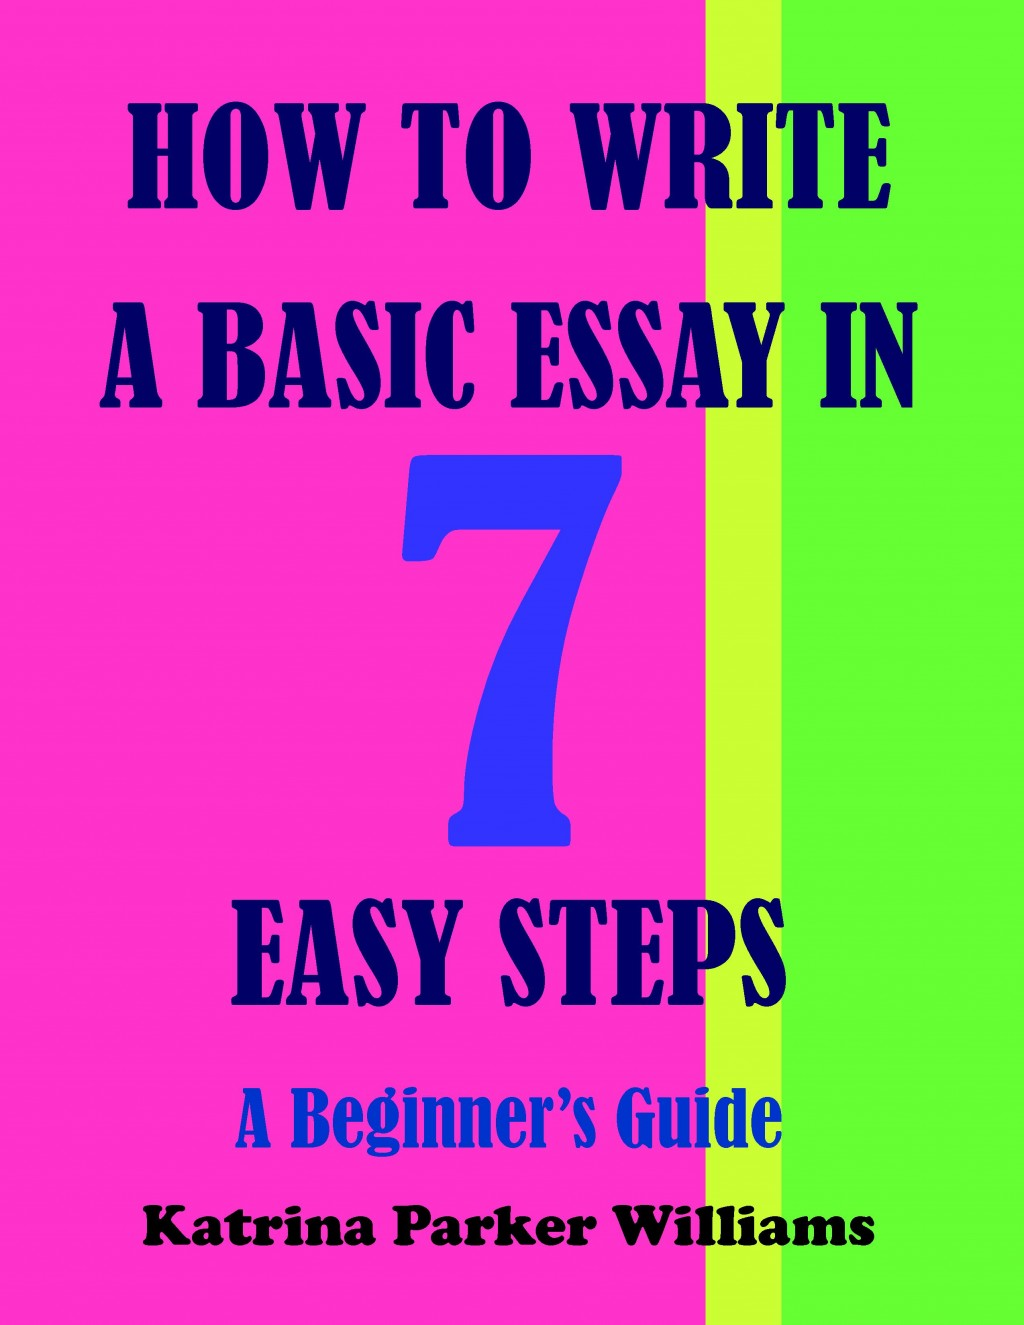 014 How To Write Basic Essay In Seven Easy Steps Writing An Stunning 4th Grade Middle School Conclusion Large